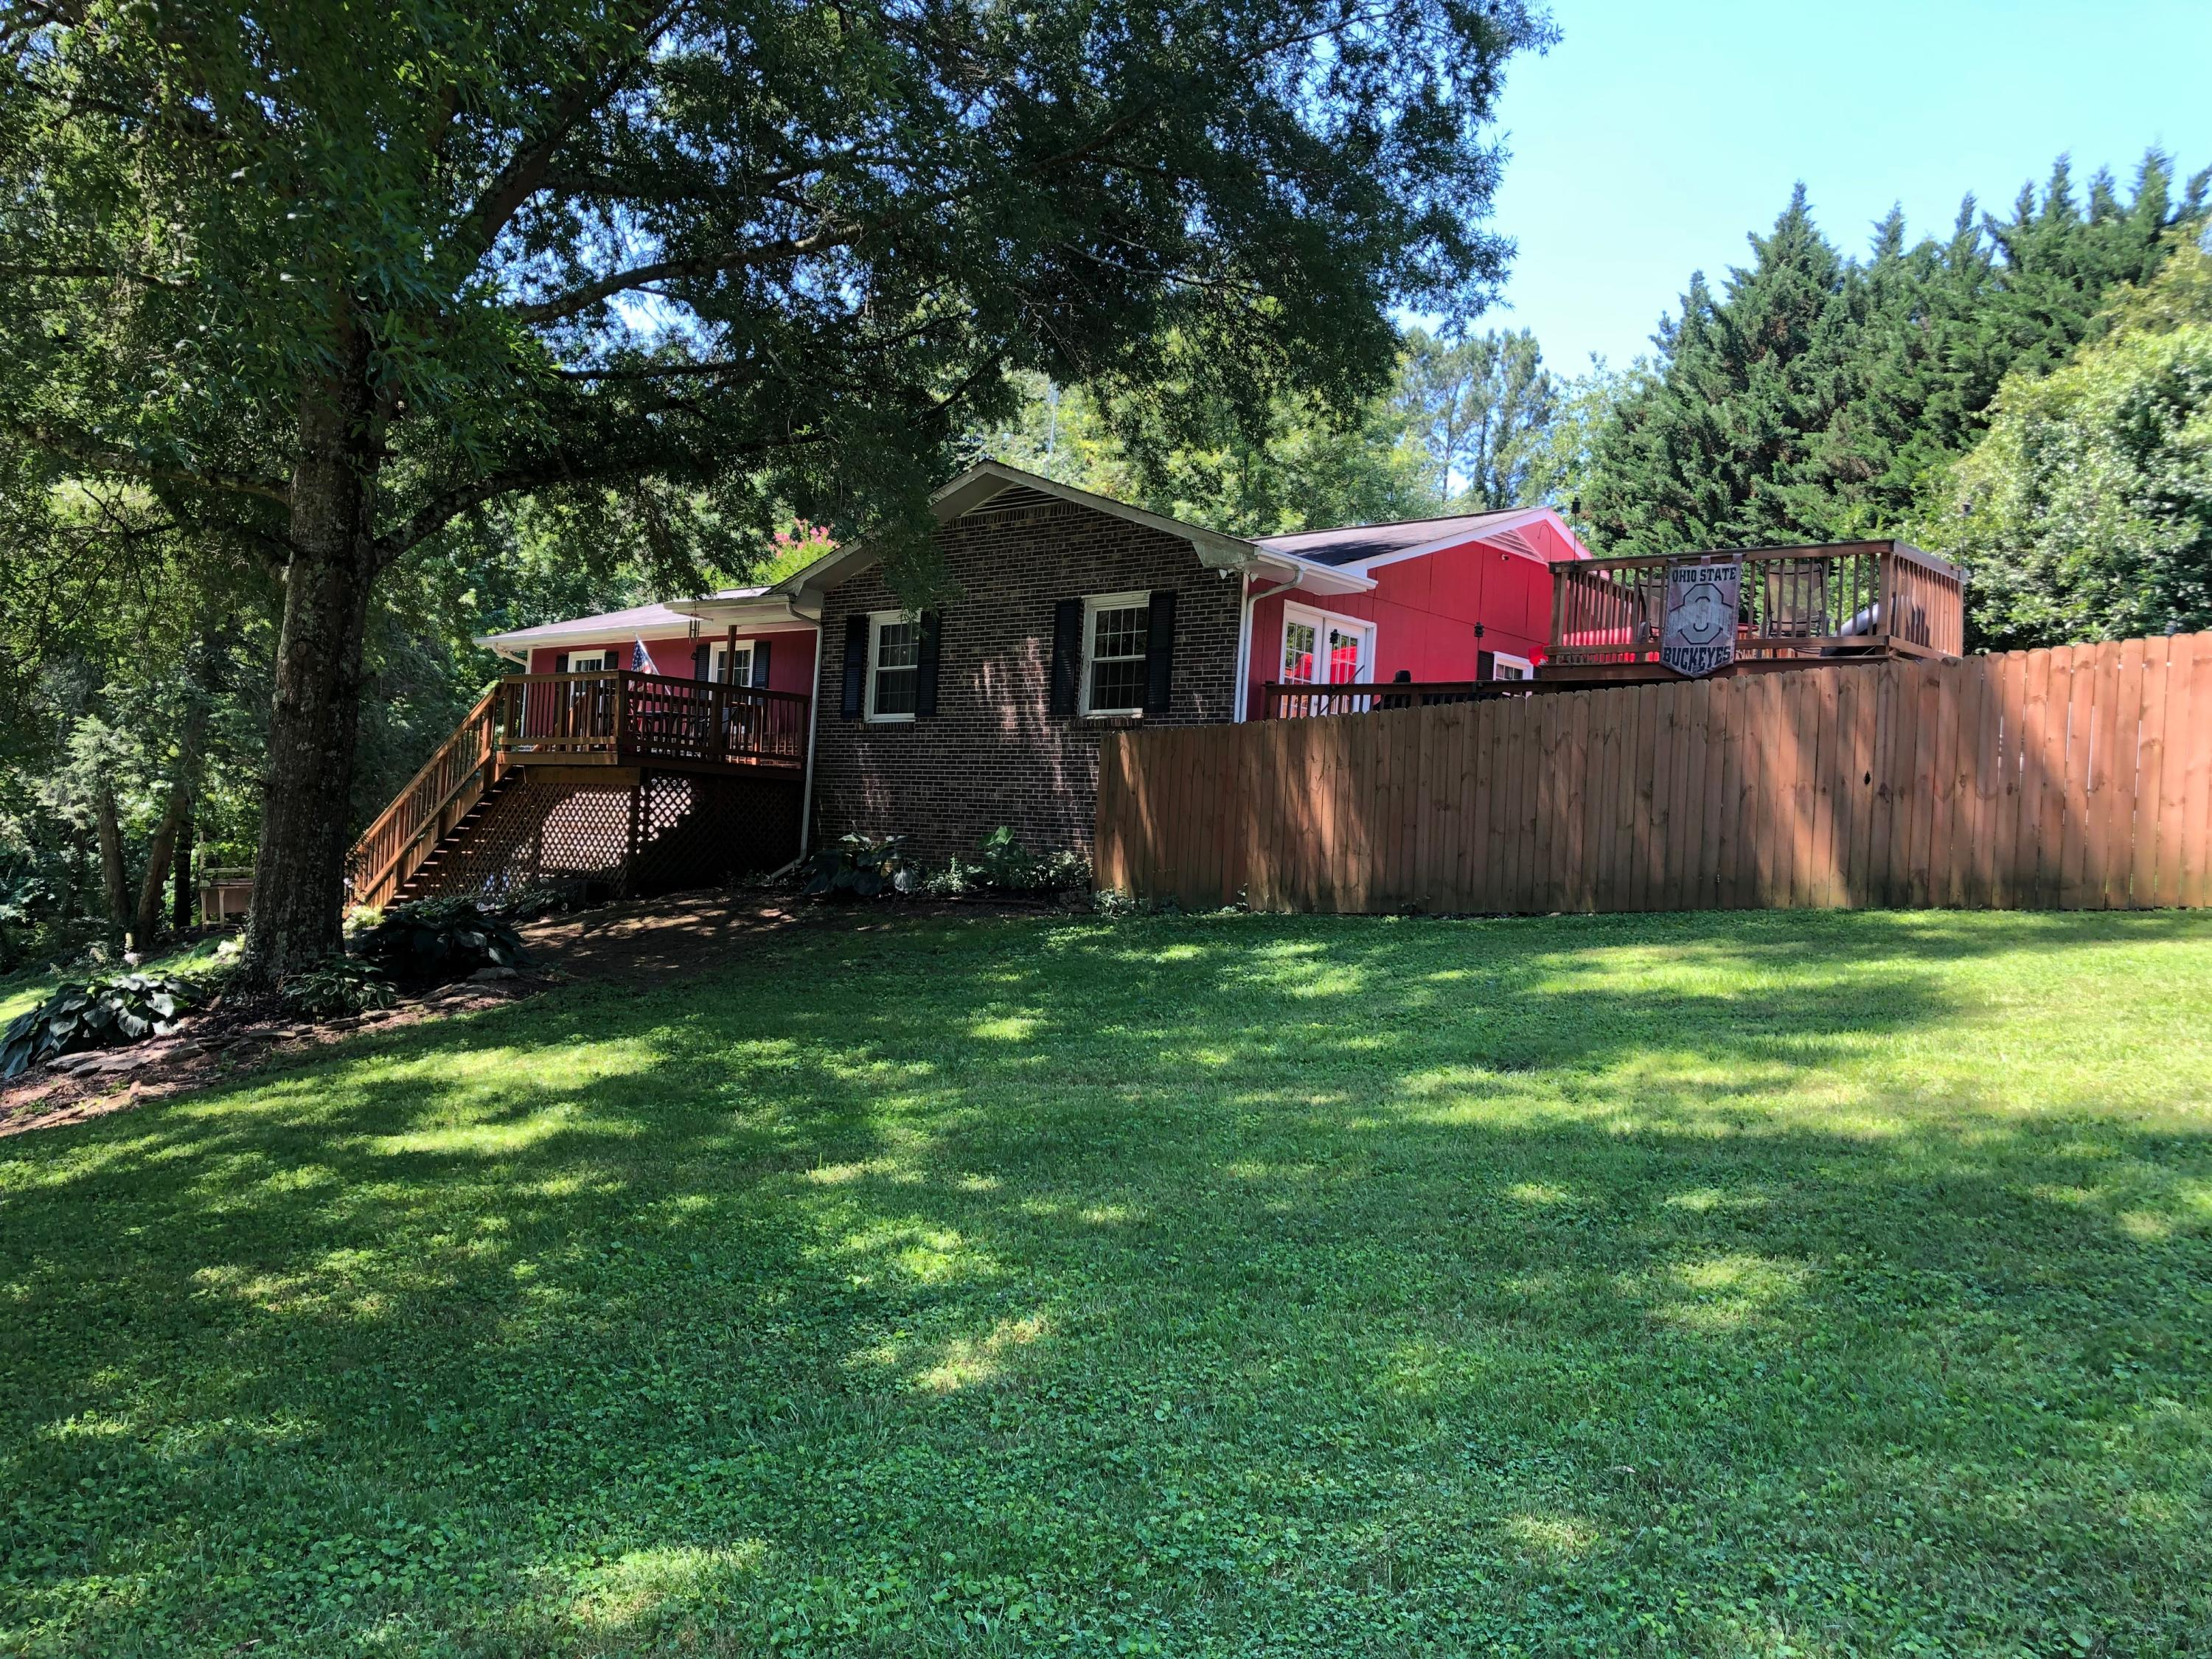 20190701023343316499000000-o Clinton anderson county homes for sale